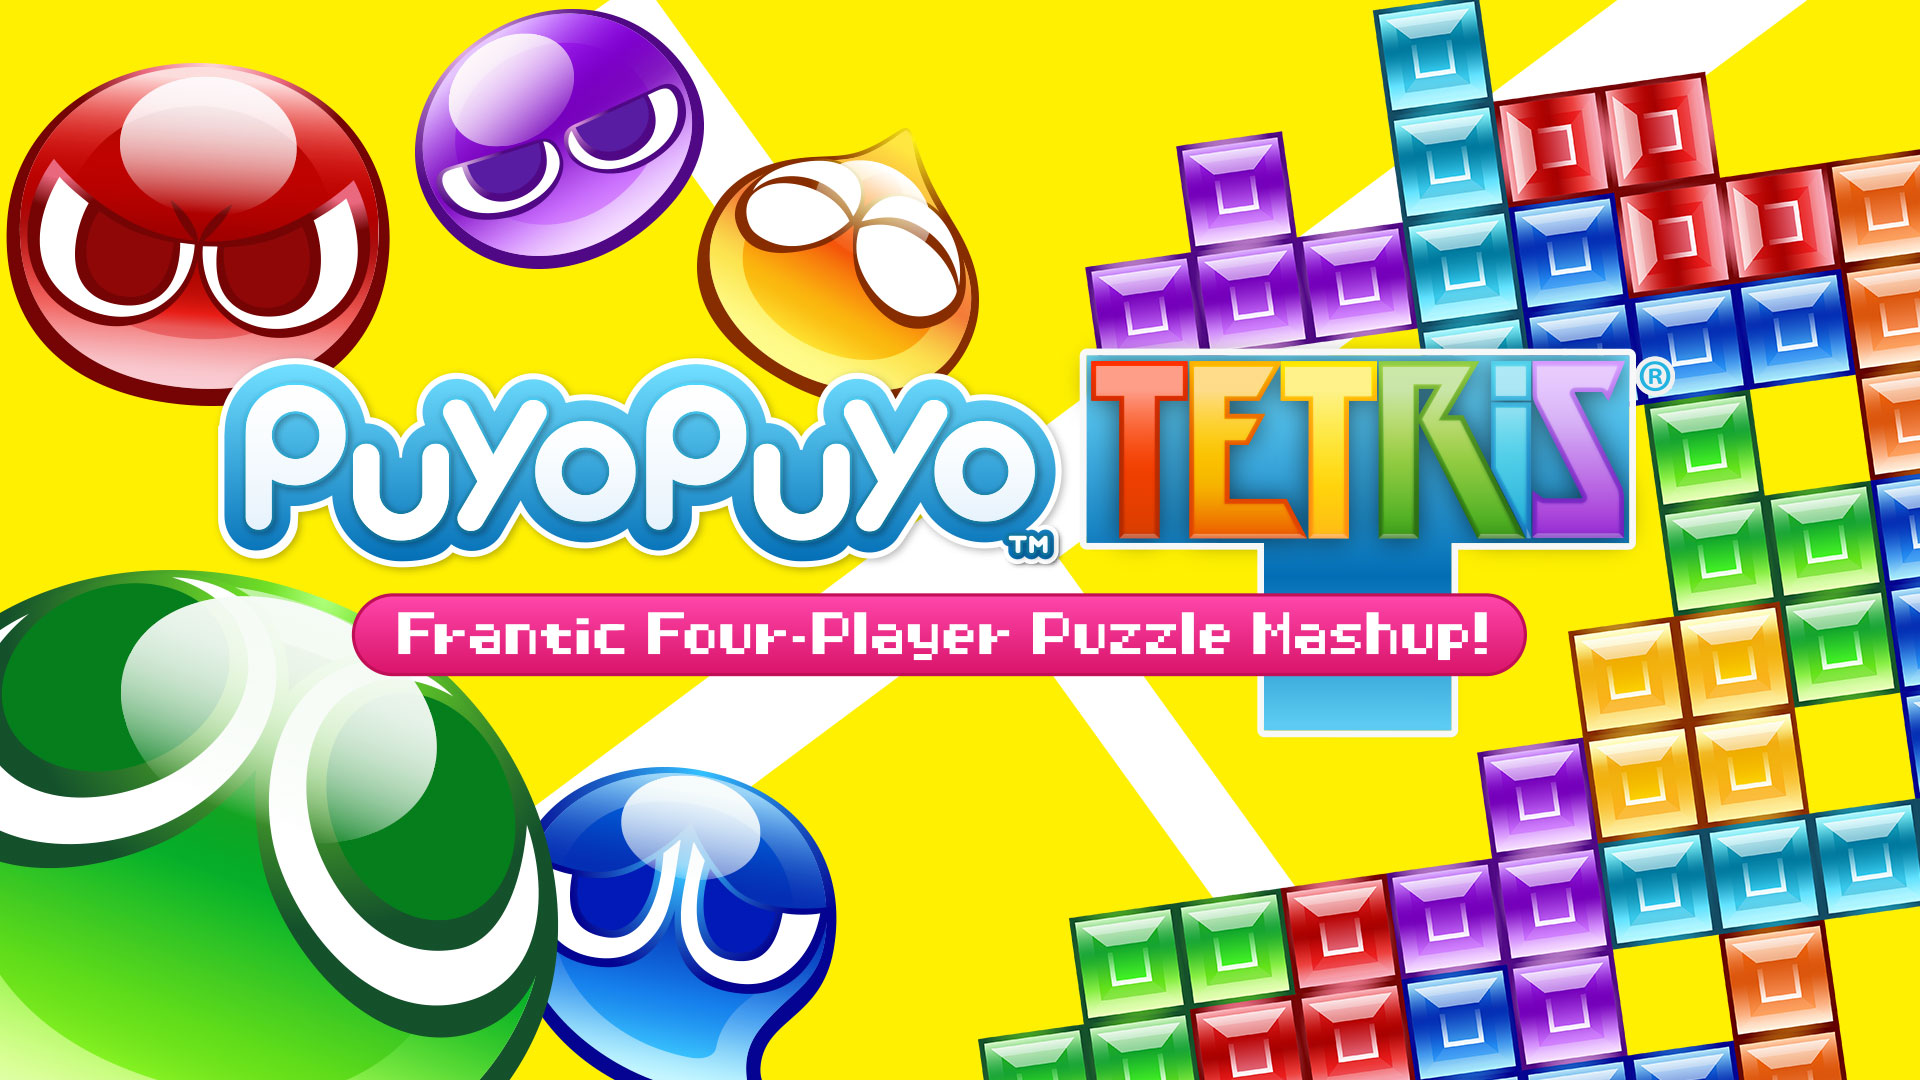 Puyo Puyo Tetris – The Frantic Four-Player Puzzle Mashup – is Now Available in the Americas